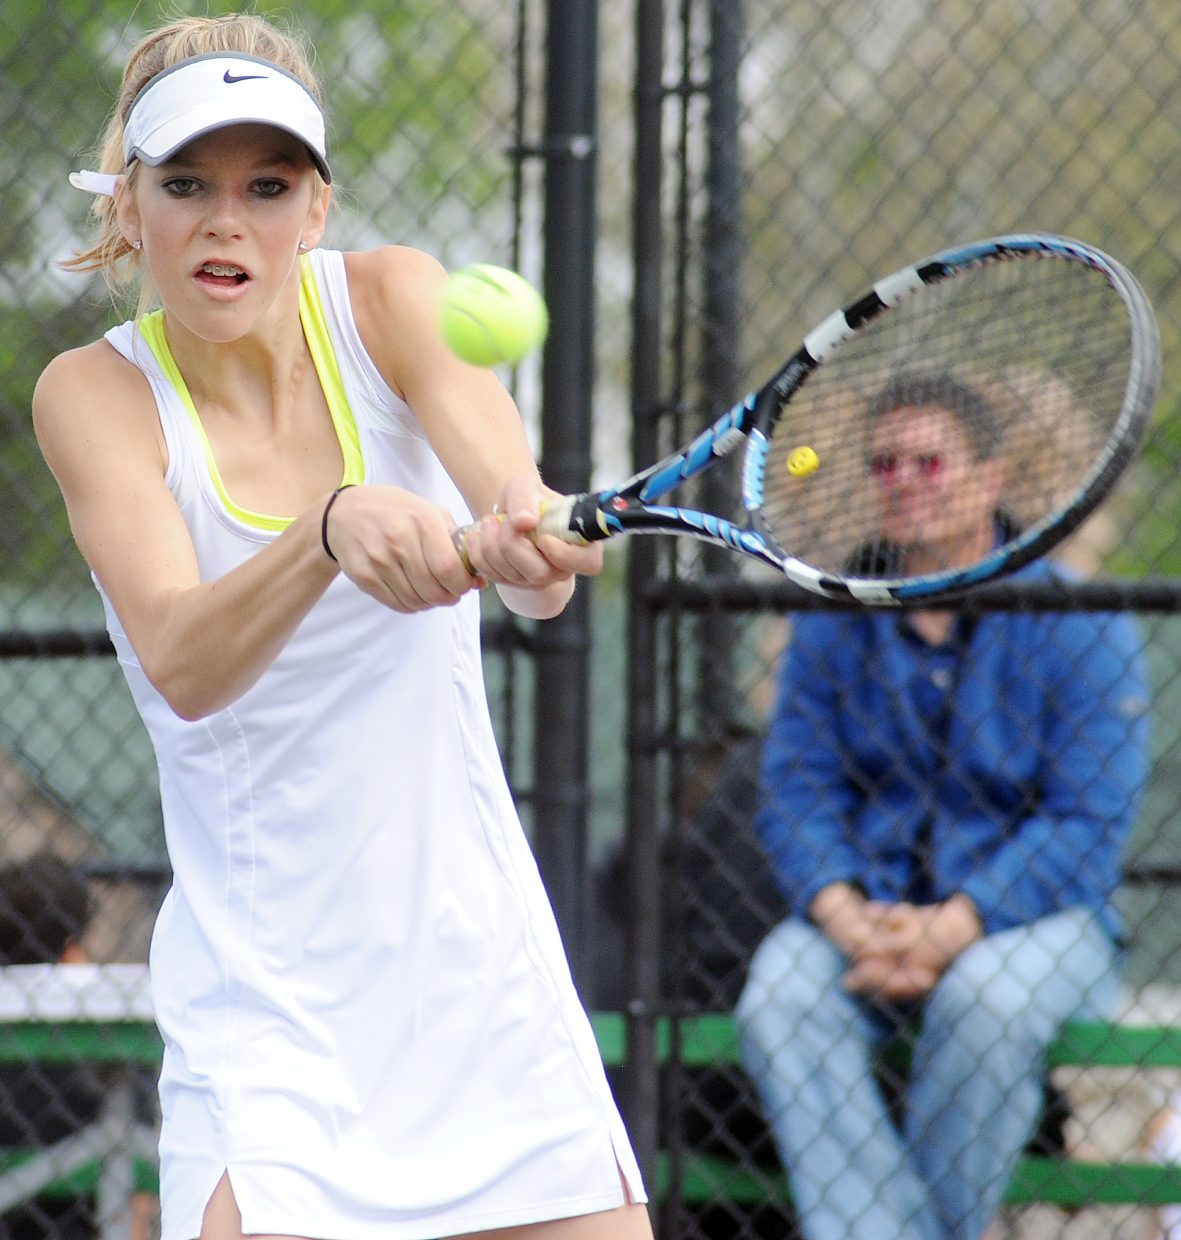 Rachel Grubbs plays on Saturday at the state tennis tournament.